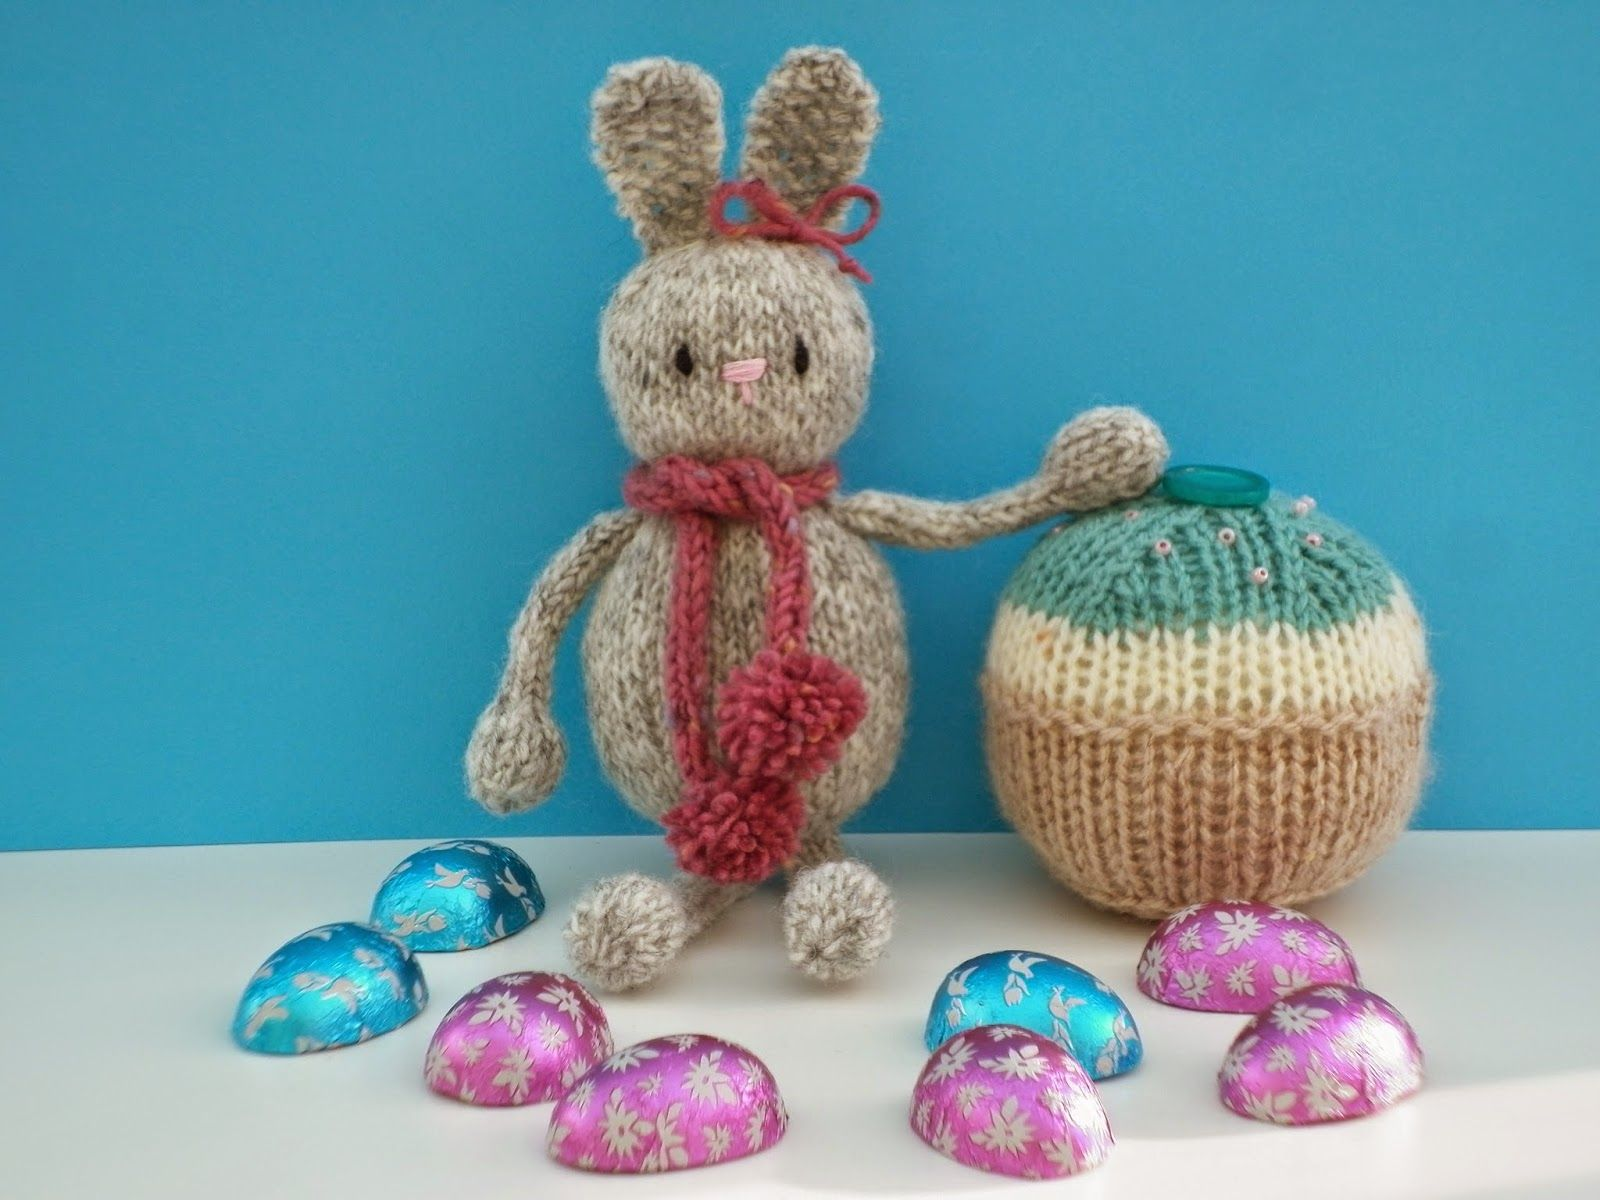 Knitting Easter Bunnies : The wool nest a free knitting pattern knitted easter bunny